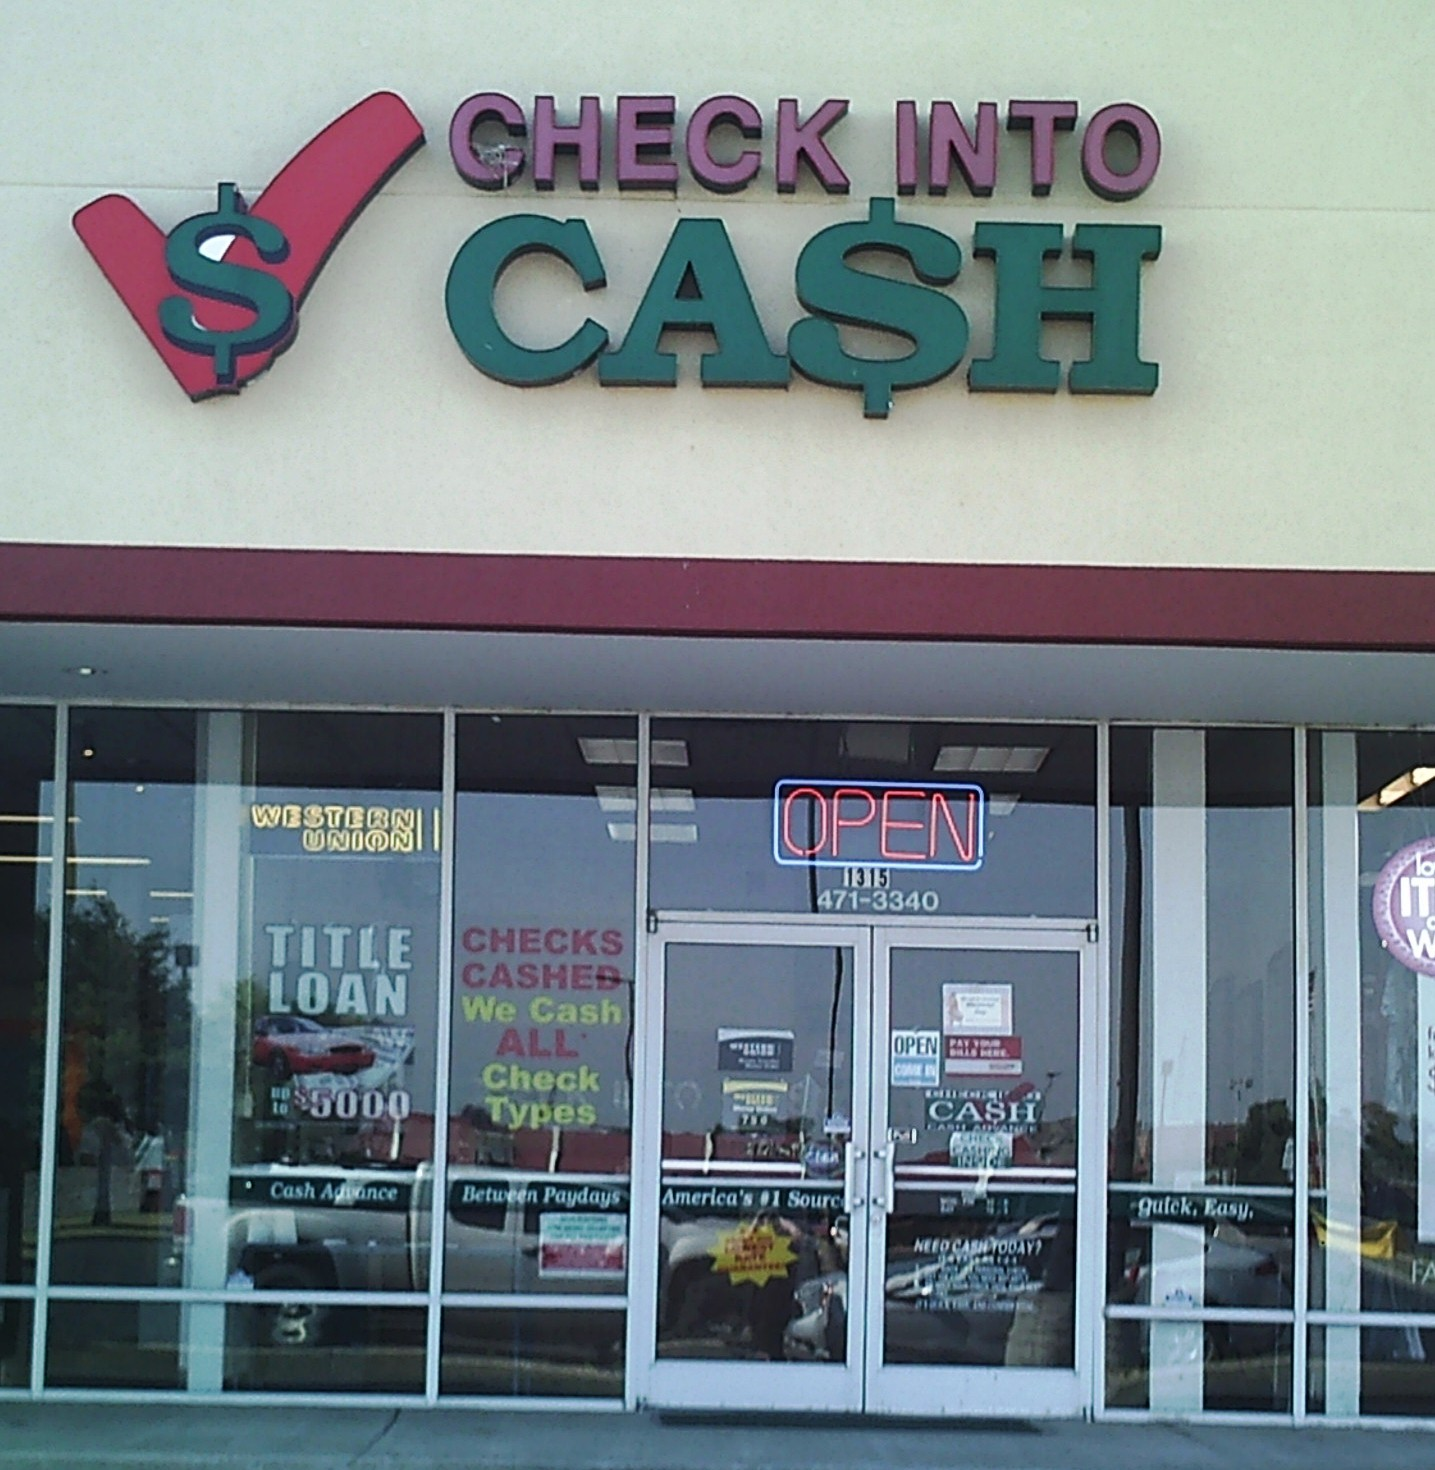 Payday loan management inc image 2